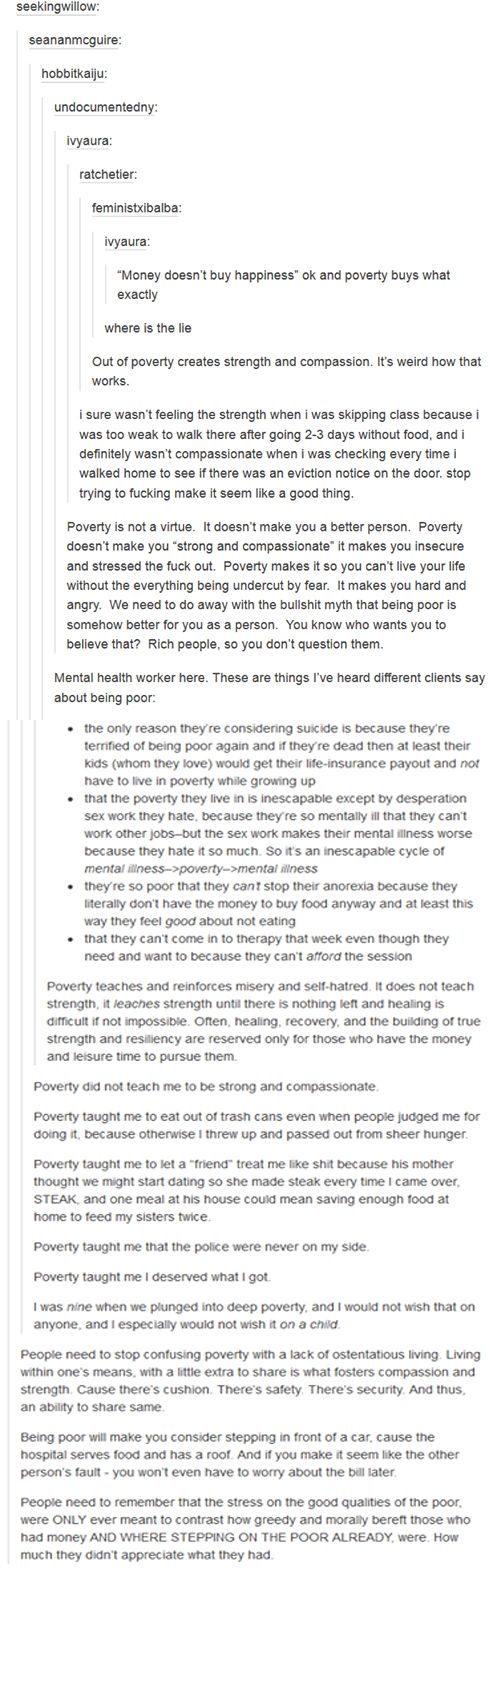 Also sucks that you try to get an education to escape the poverty but have to work while going to school and get told by advisors that you're a failure because you are barely scraping by.